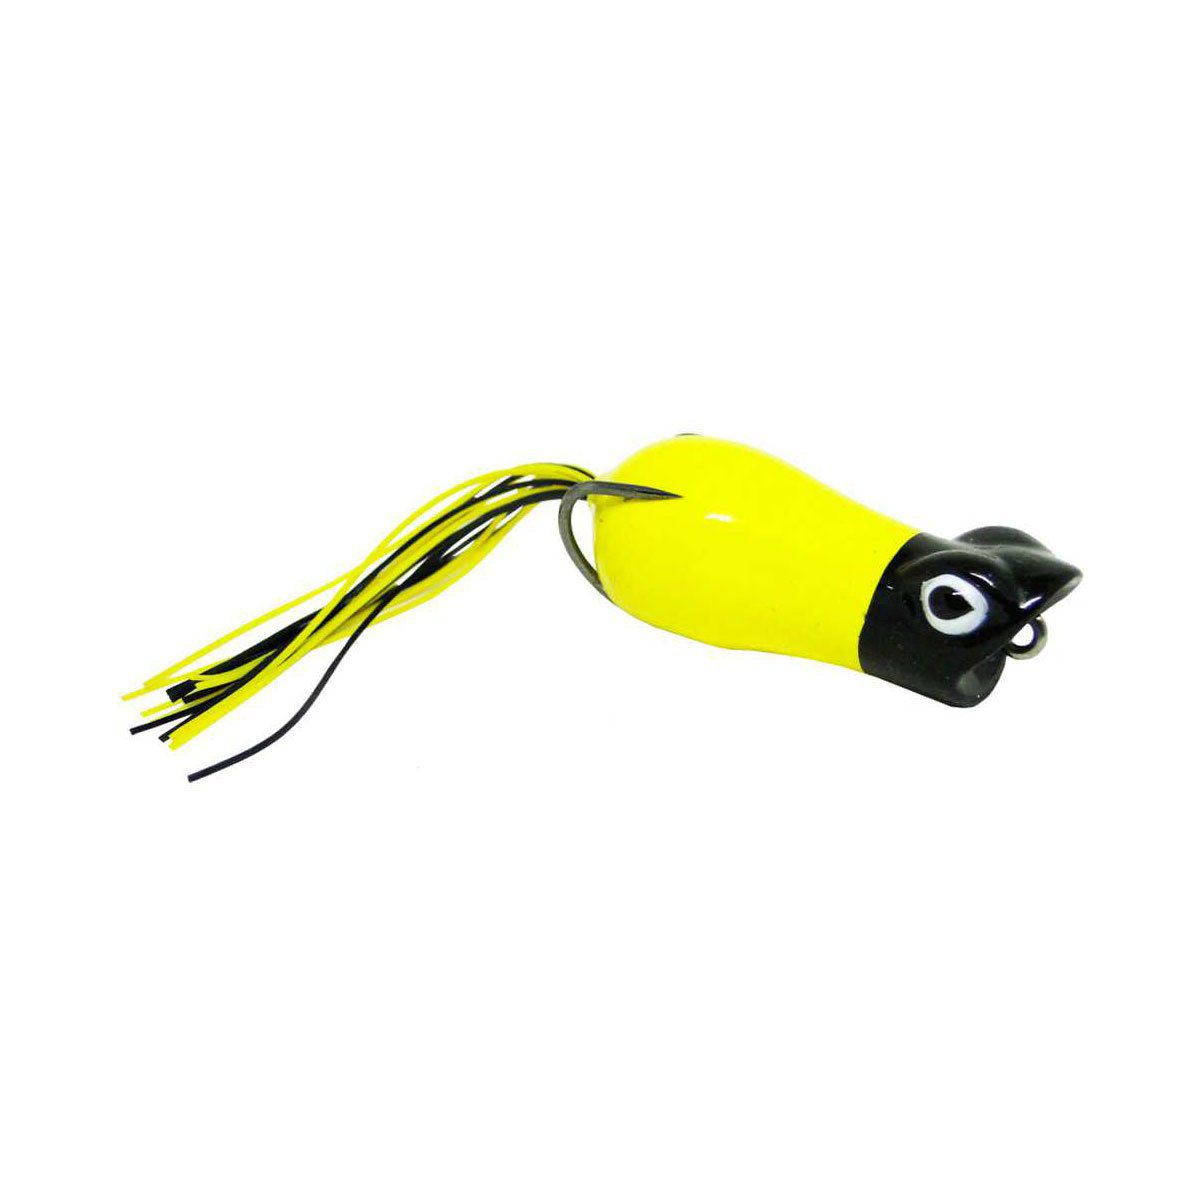 Isca artificial Yara Crazy Popper 6cm 13g